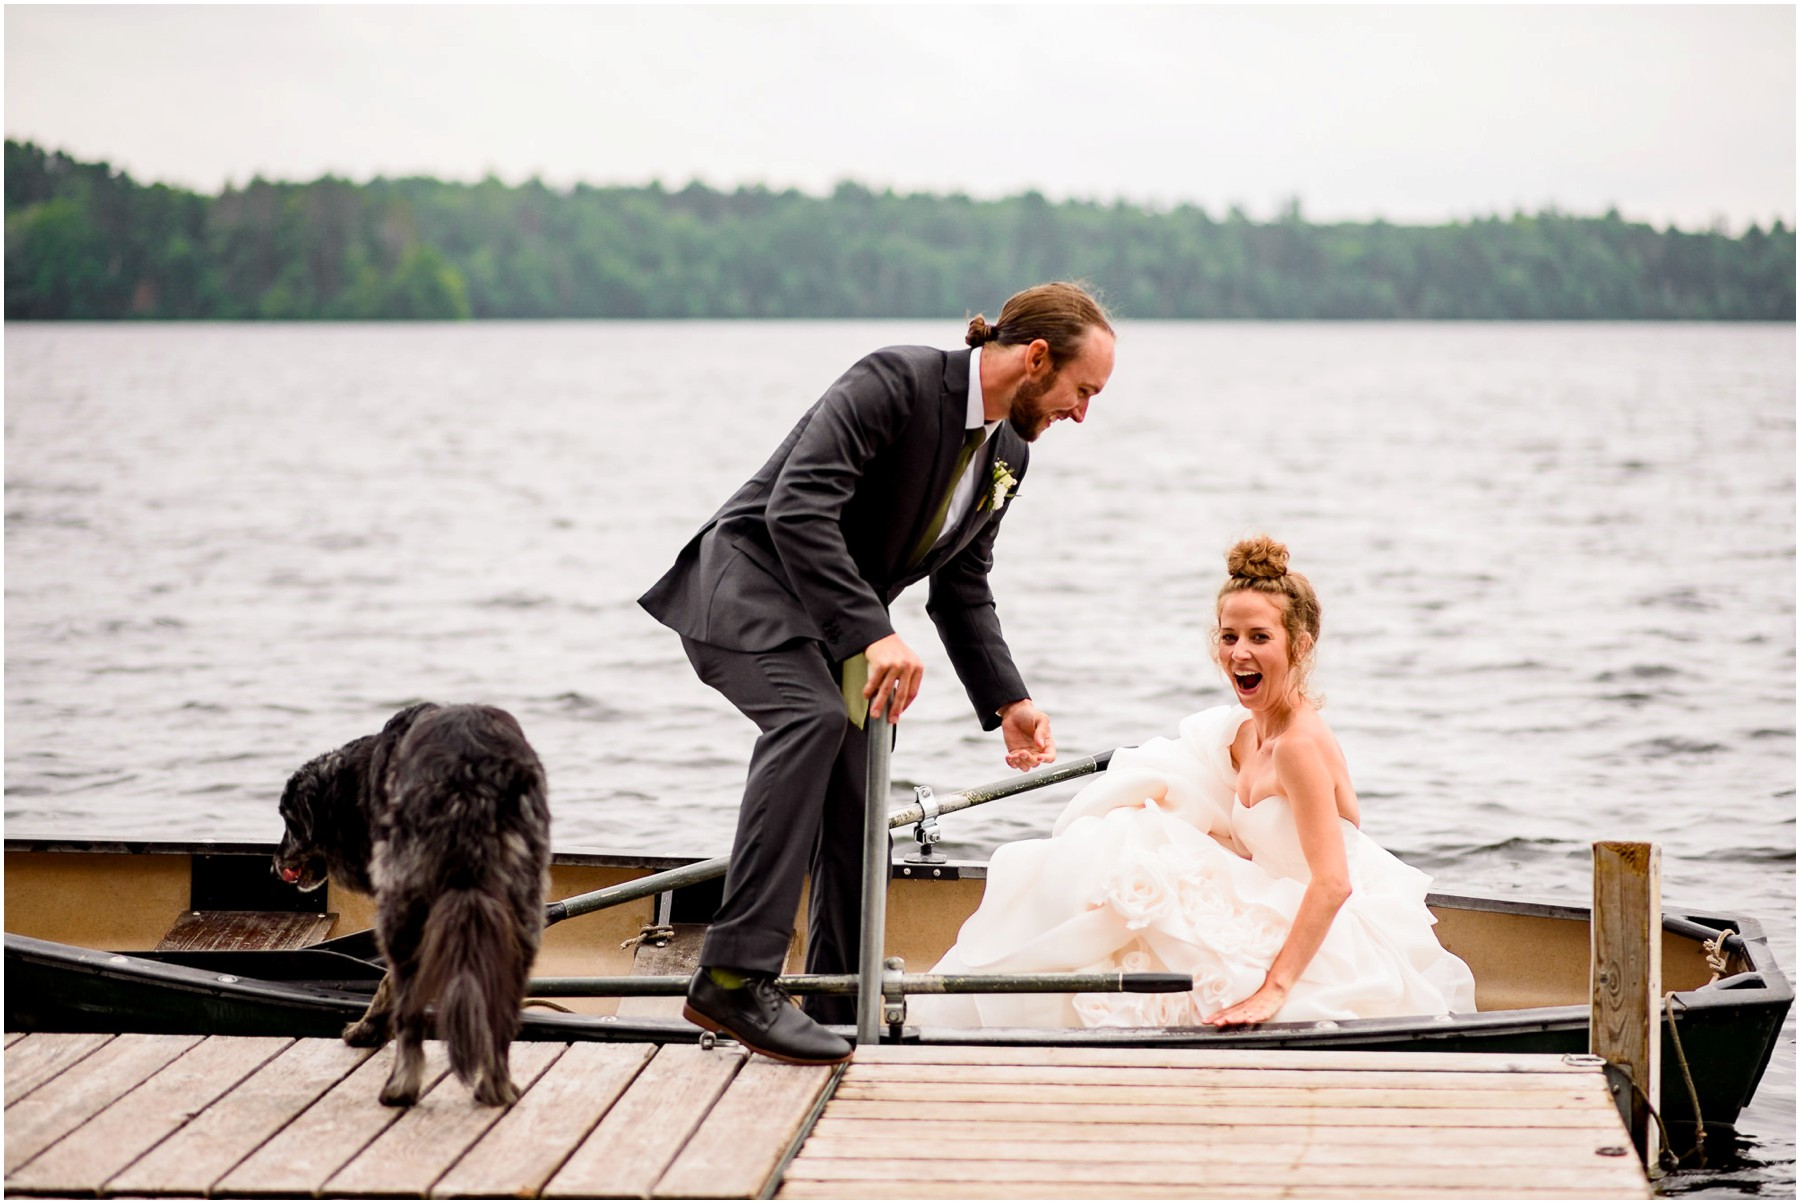 candid image of bride and Groom getting into boat on lake